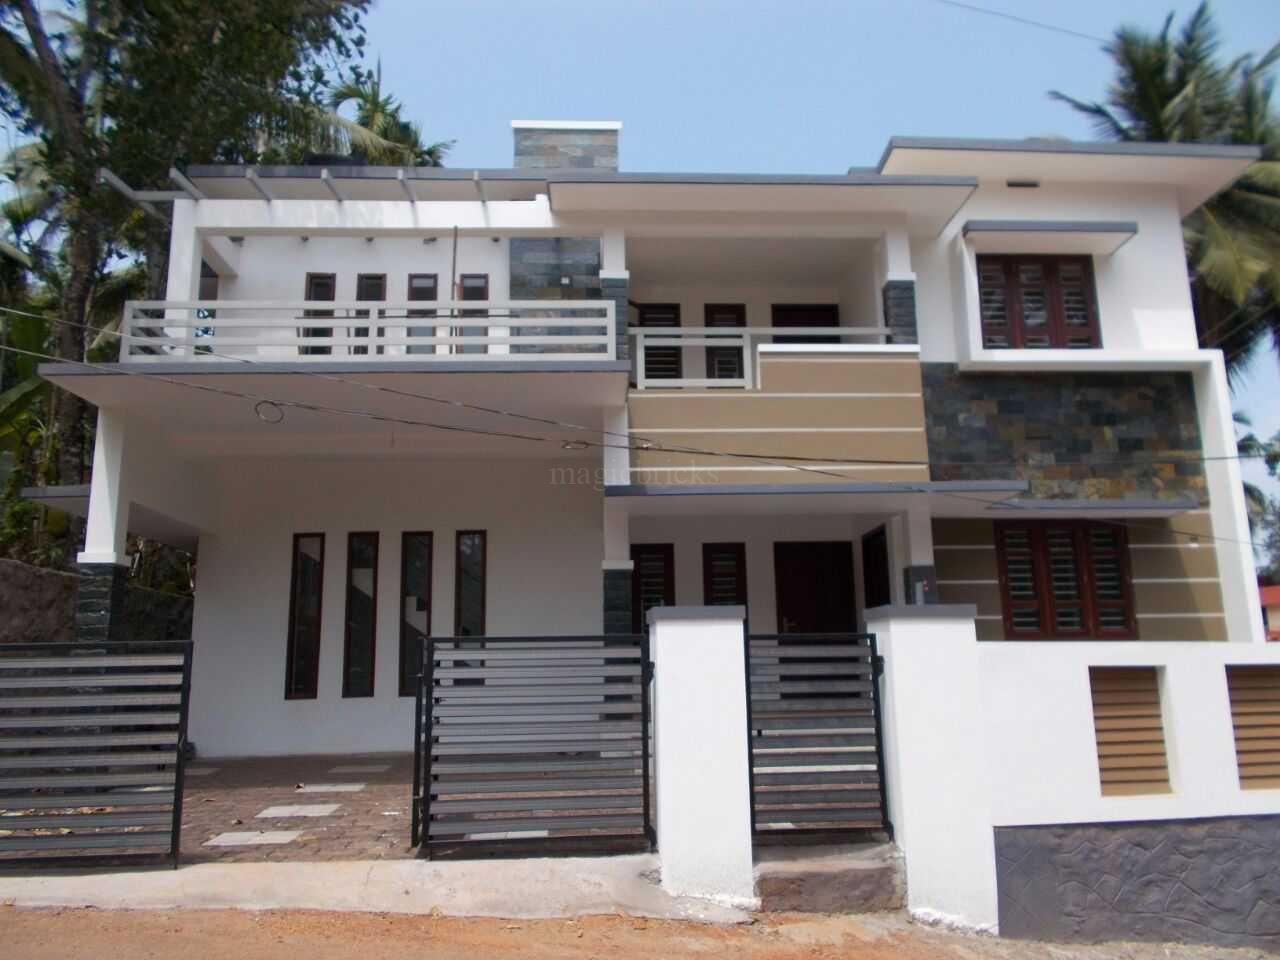 Expected price 75 lakhs 3 bhk house for sale in thaneerpanthal kakkodi 4 5 cent 75 lakh contact 9387523327 property id3028